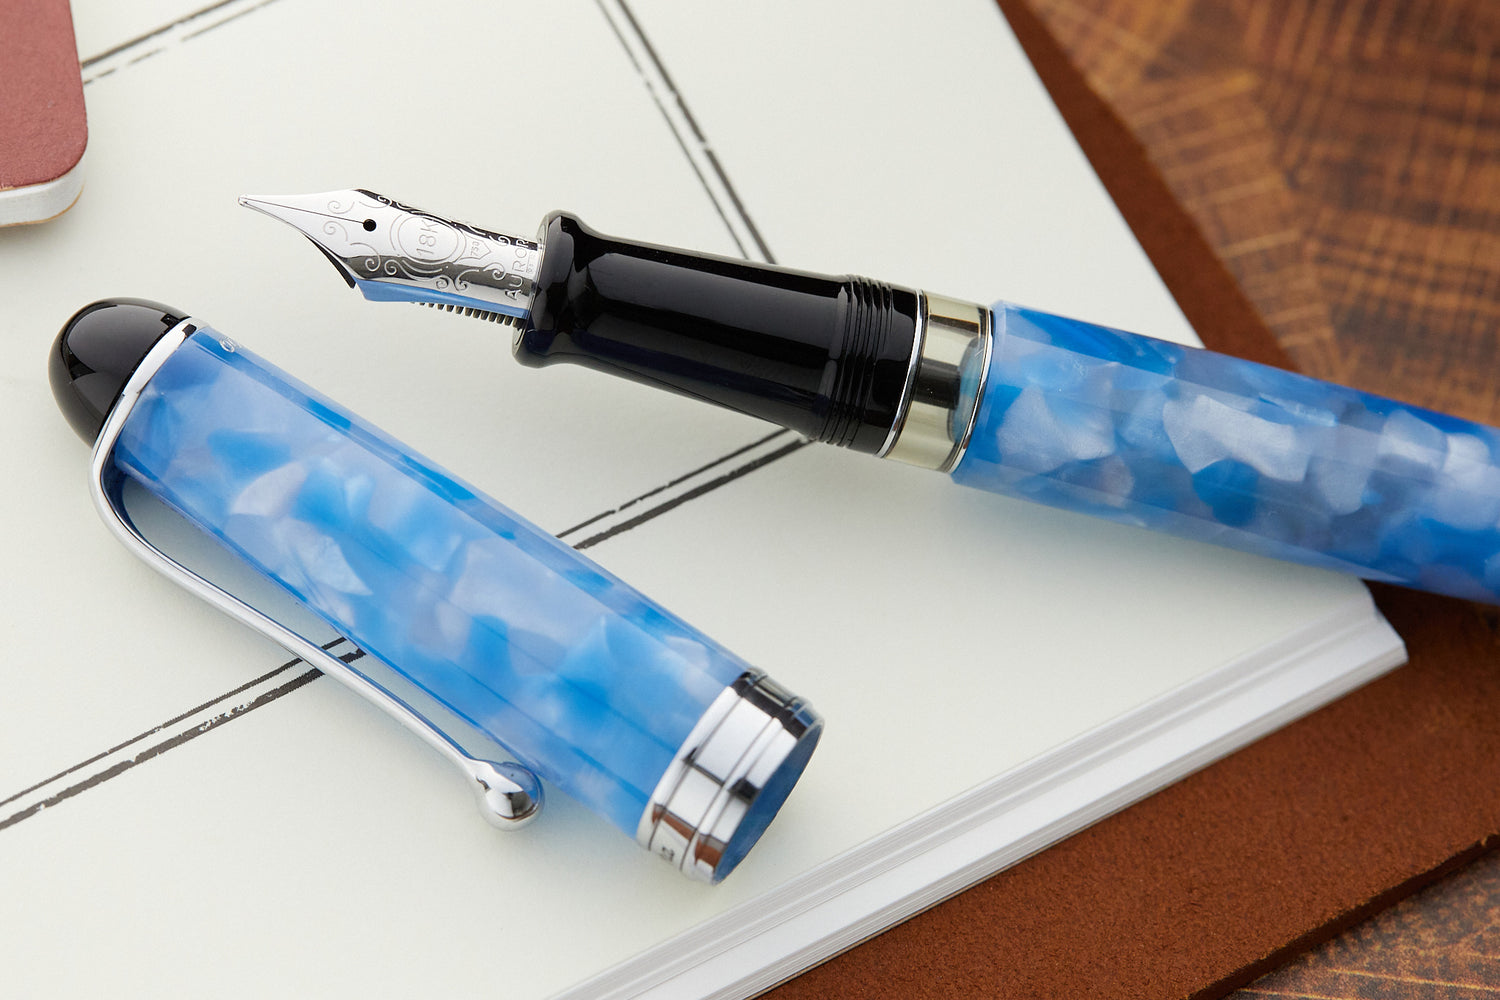 Aurora 88 Fountain Pen - Plutone (Limited Edition)